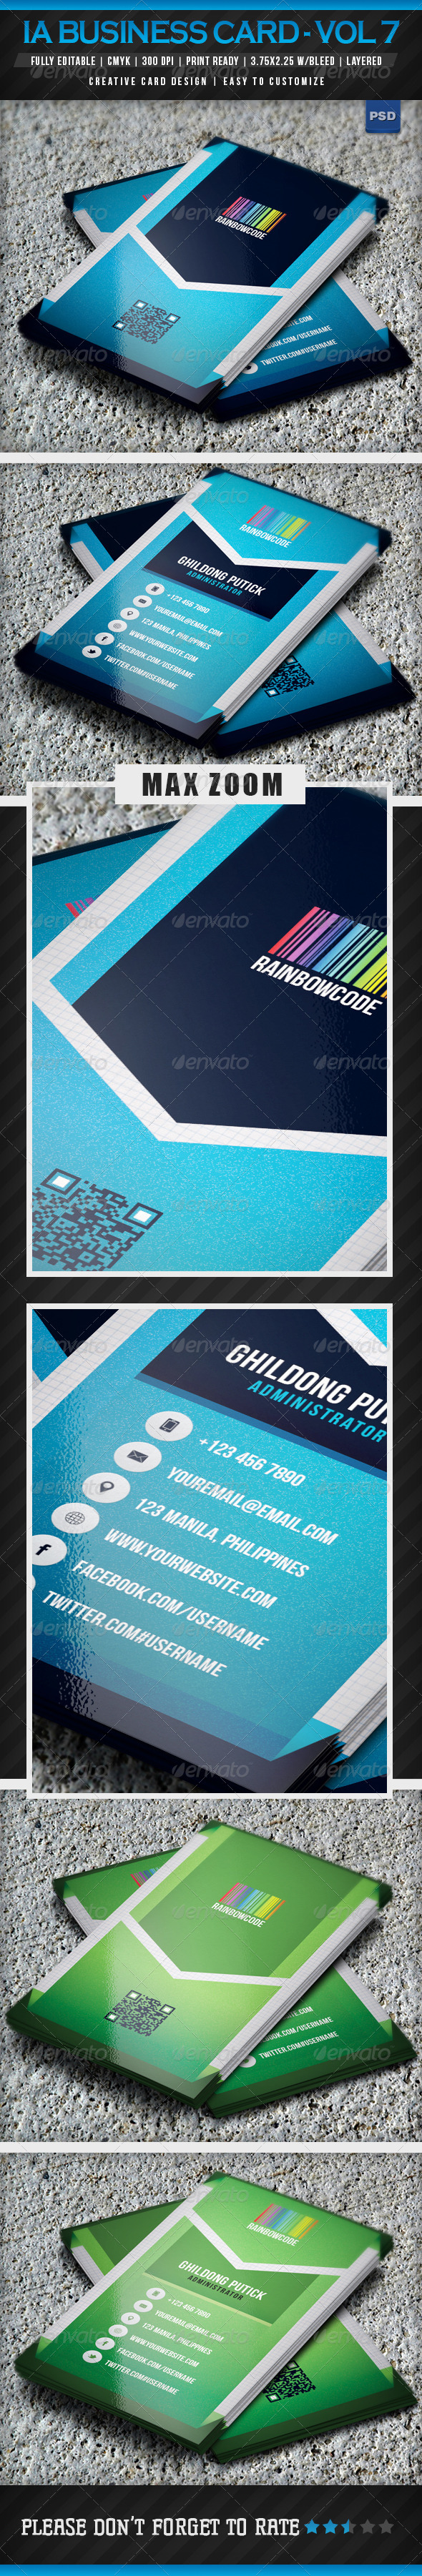 IntenseArtisan Business Card Vol.16 - Corporate Business Cards